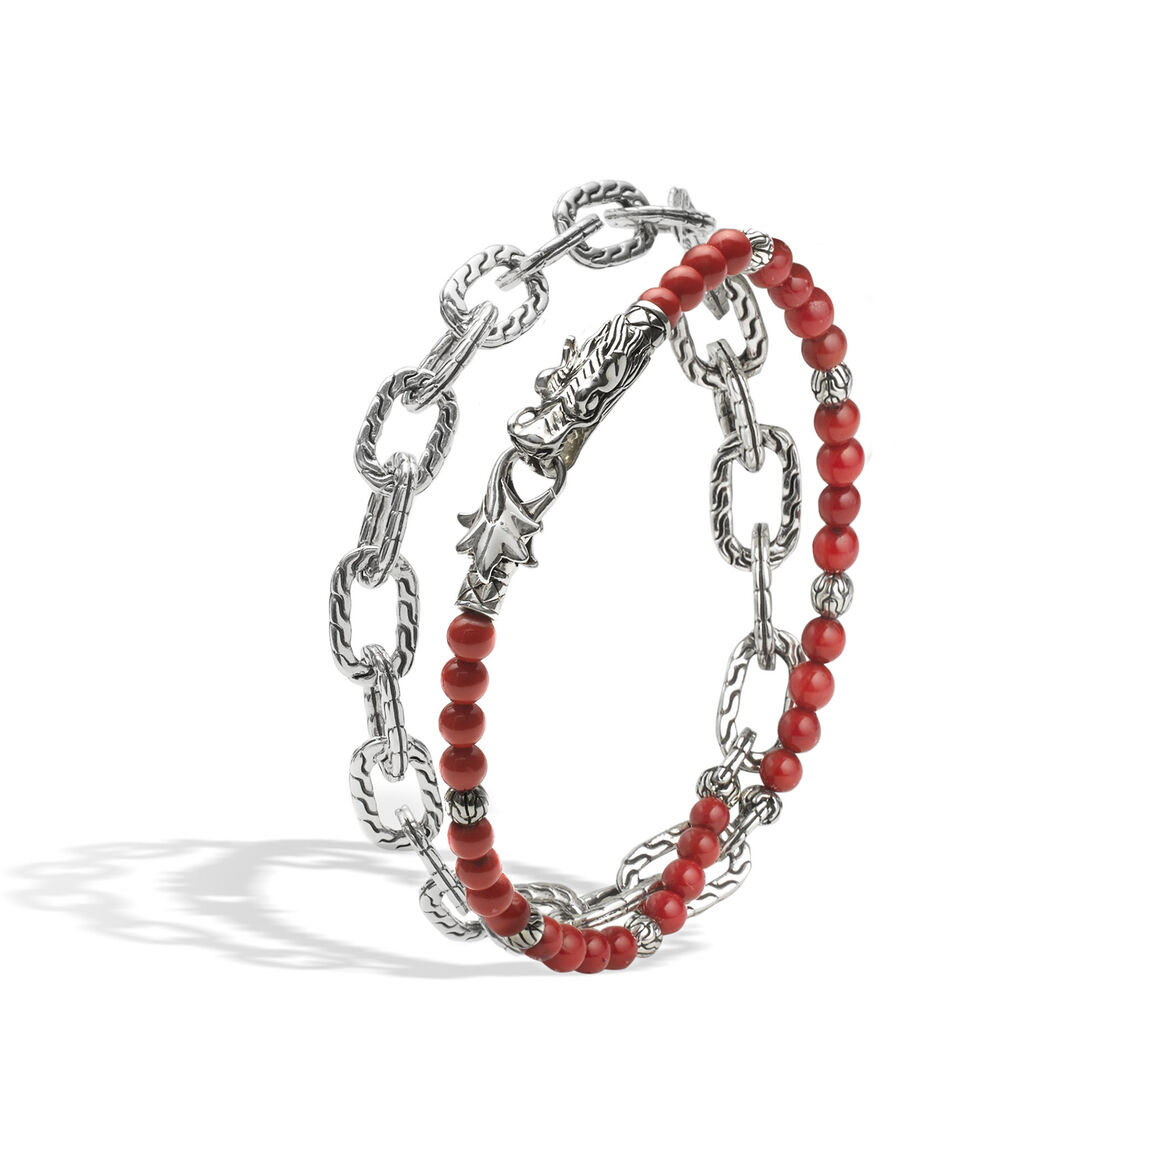 Legends Naga Wrap Bracelet in Silver with Gemstone